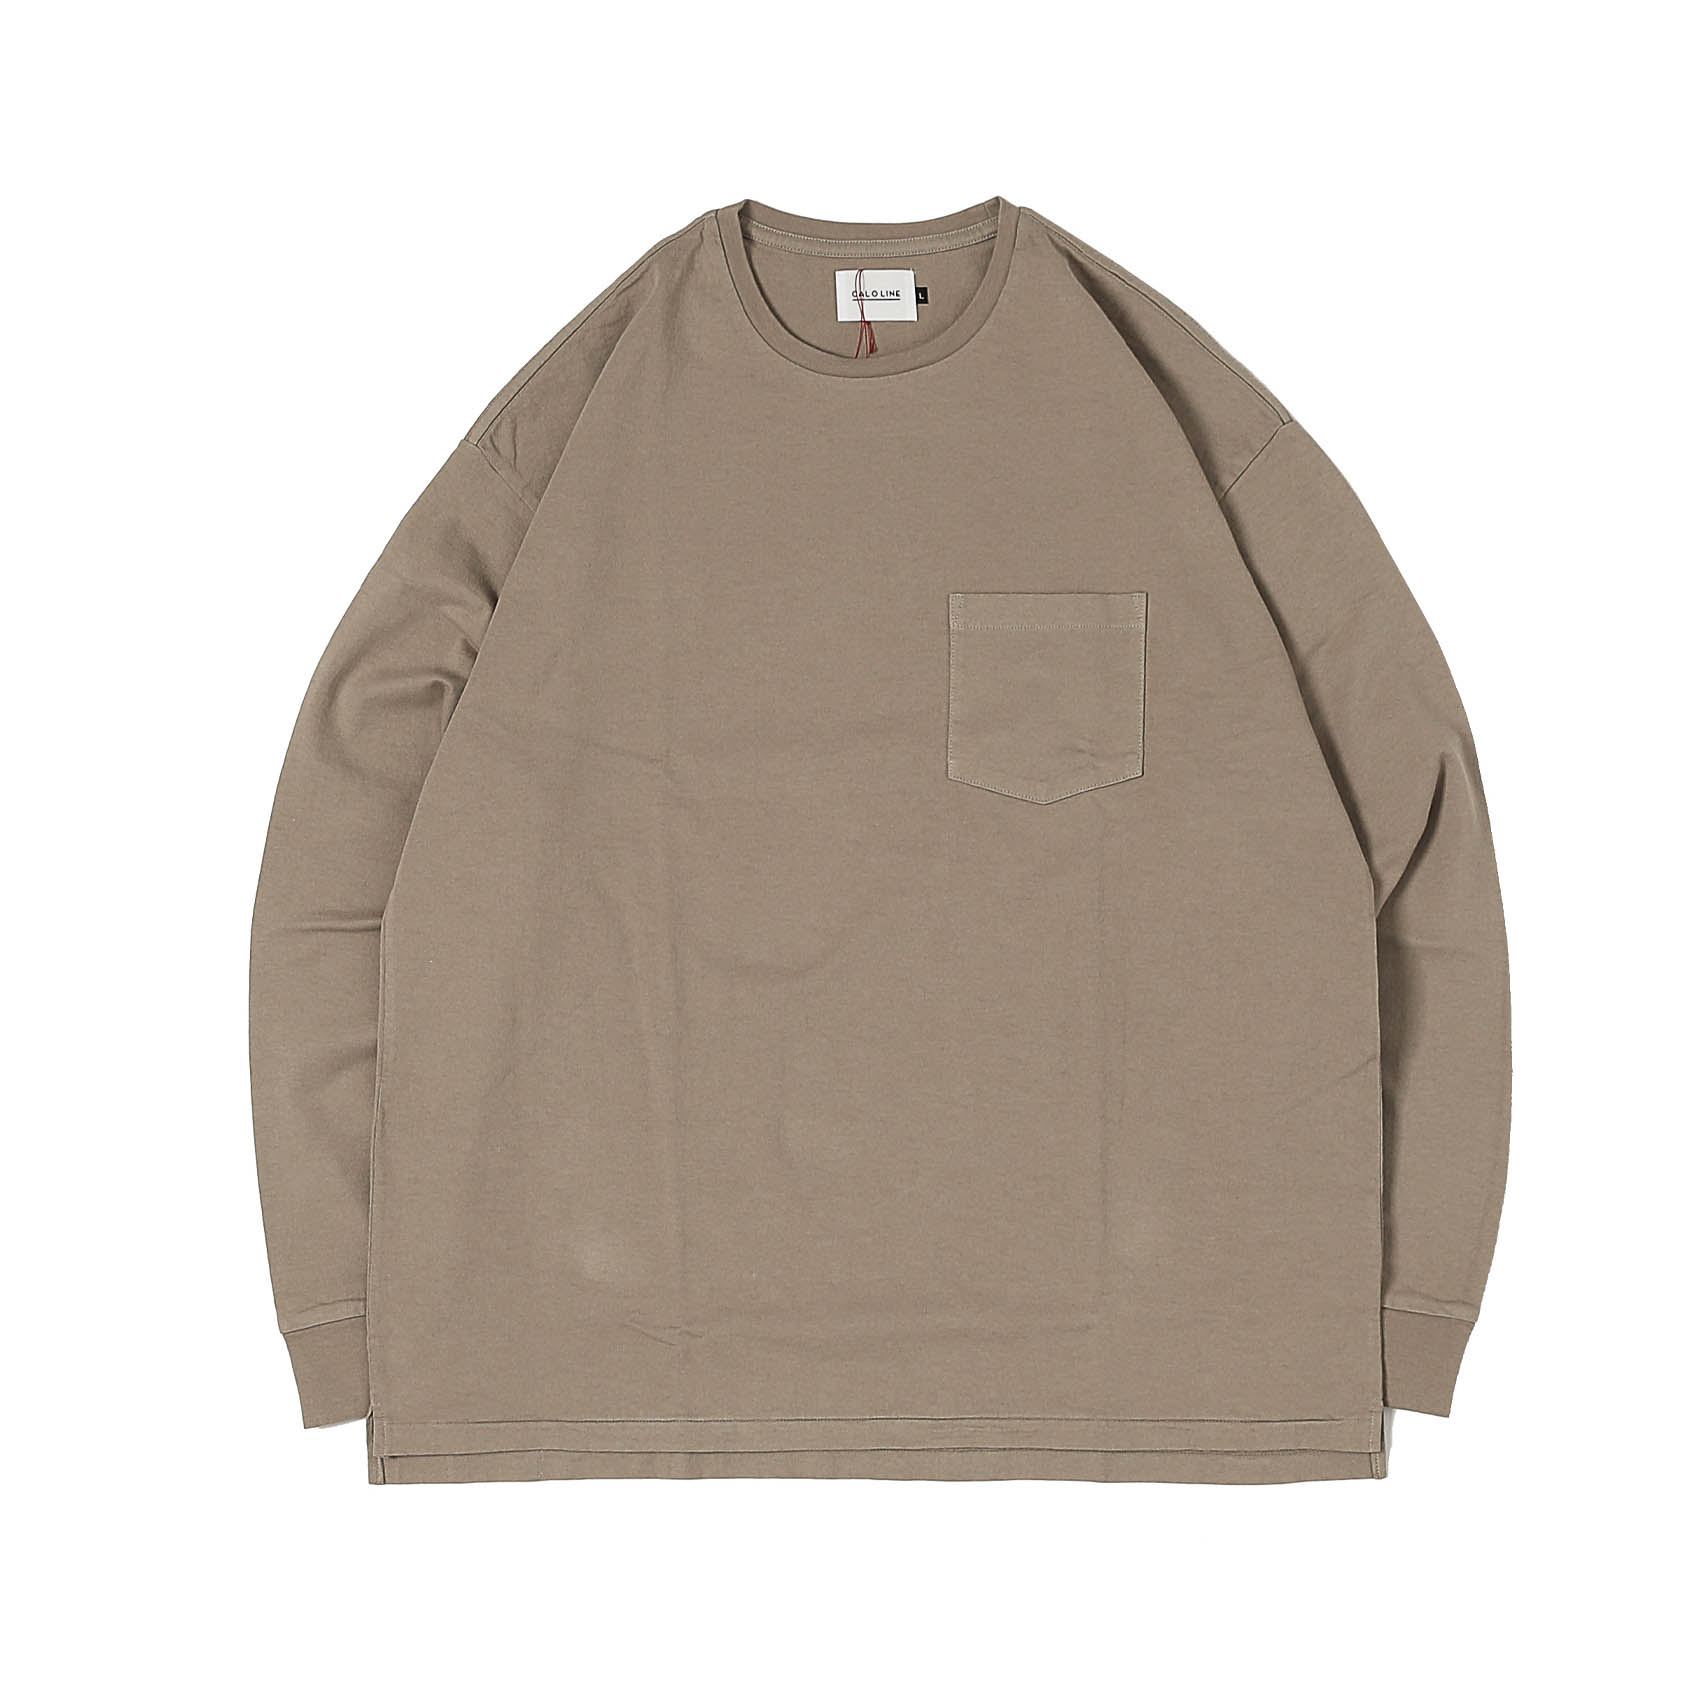 SOLID COLOR L/S TEE - SMOKE BEIGE